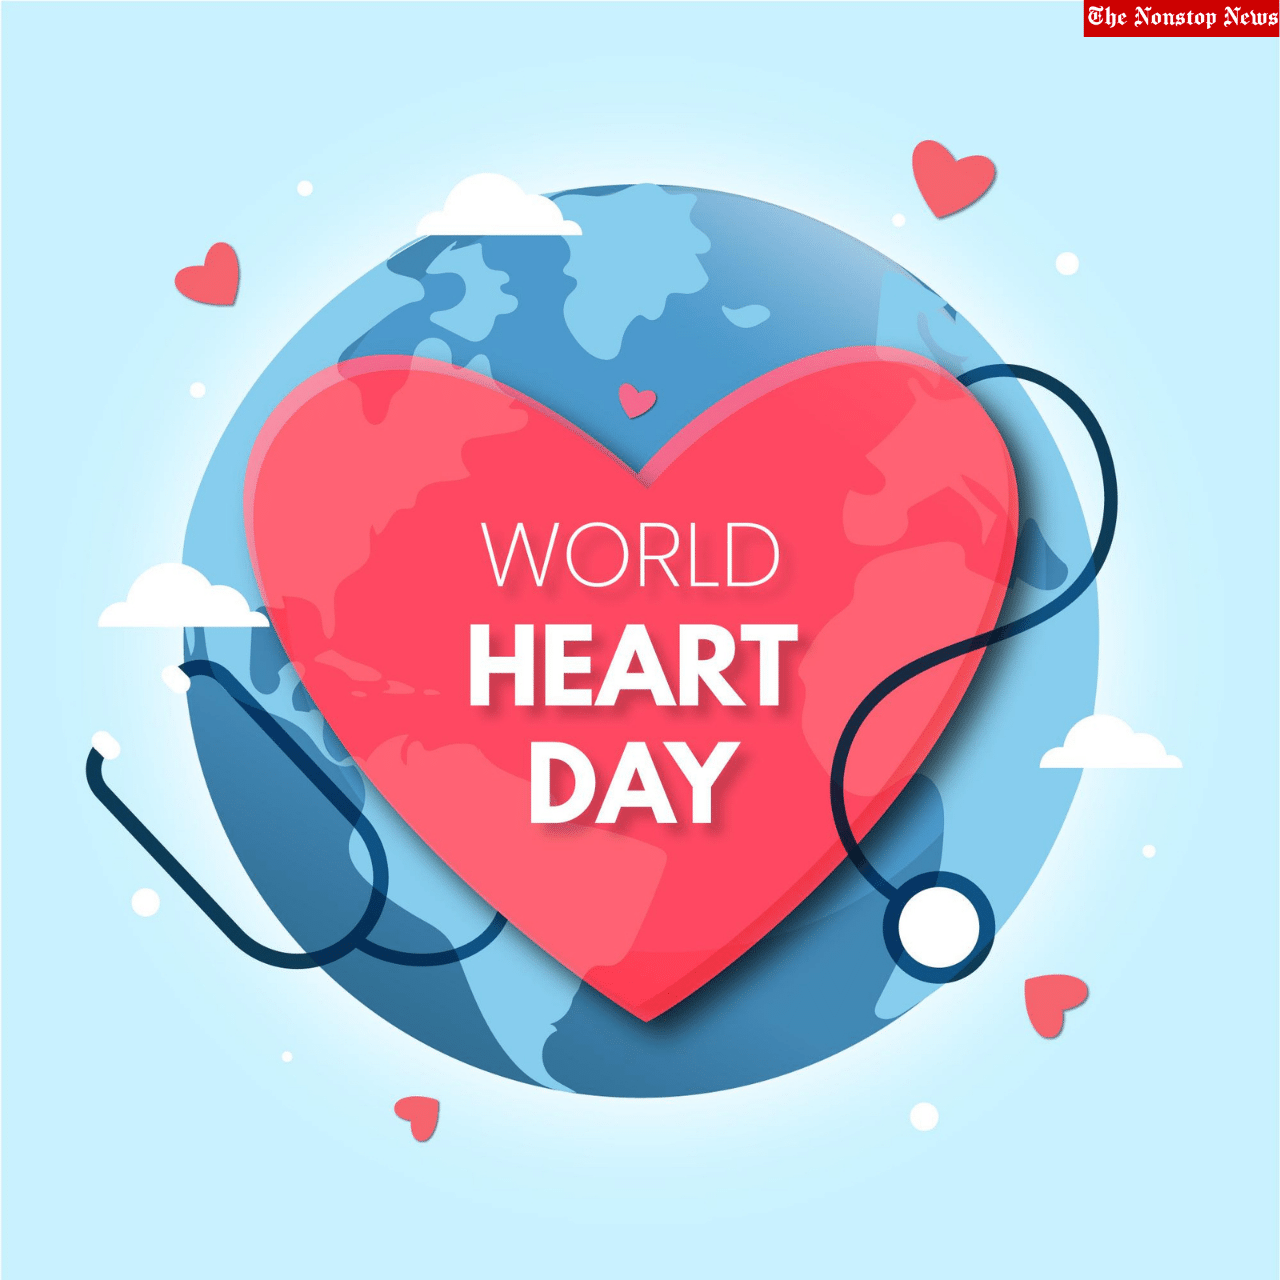 World Heart Day 2021 Quotes, Messages, Poster, WhatsApp Status, and Images to create awareness